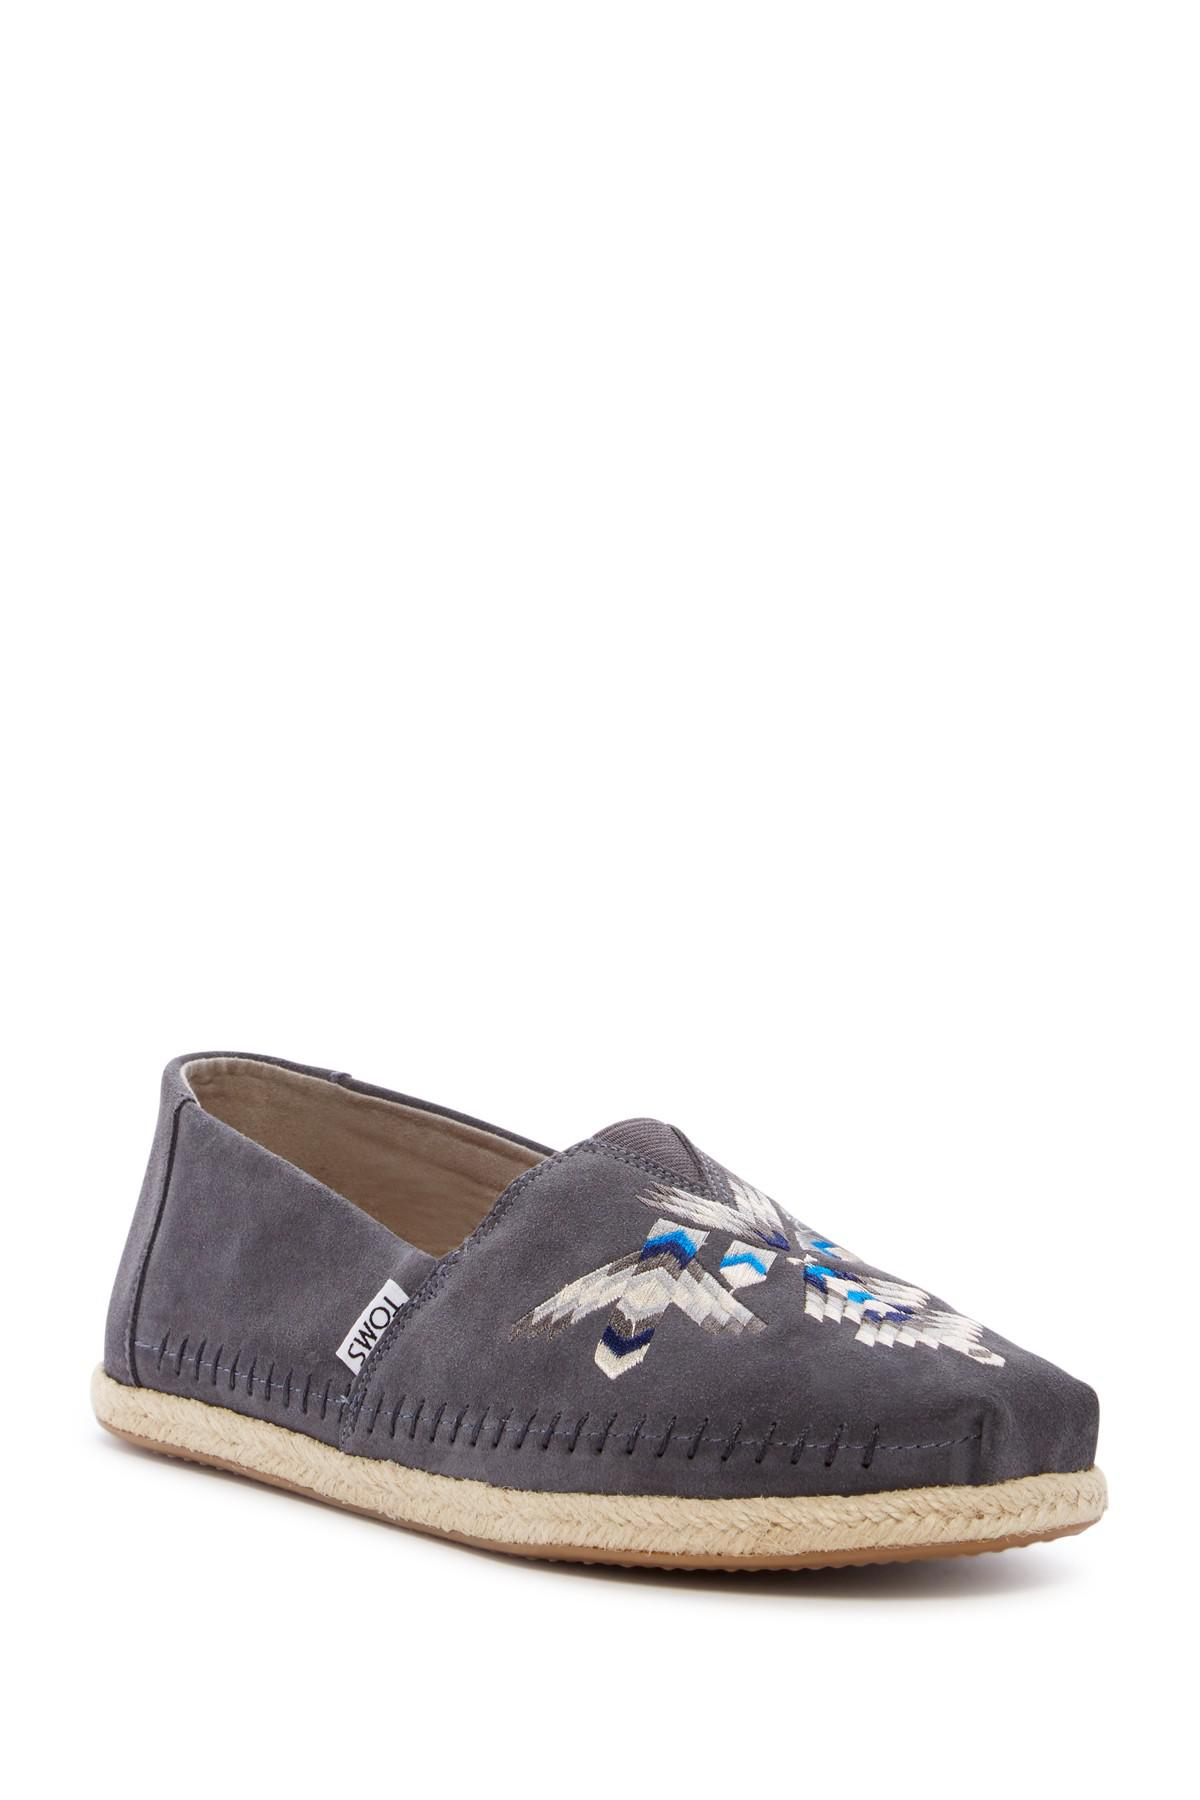 Nordstrom Rack Toms Shoe Men